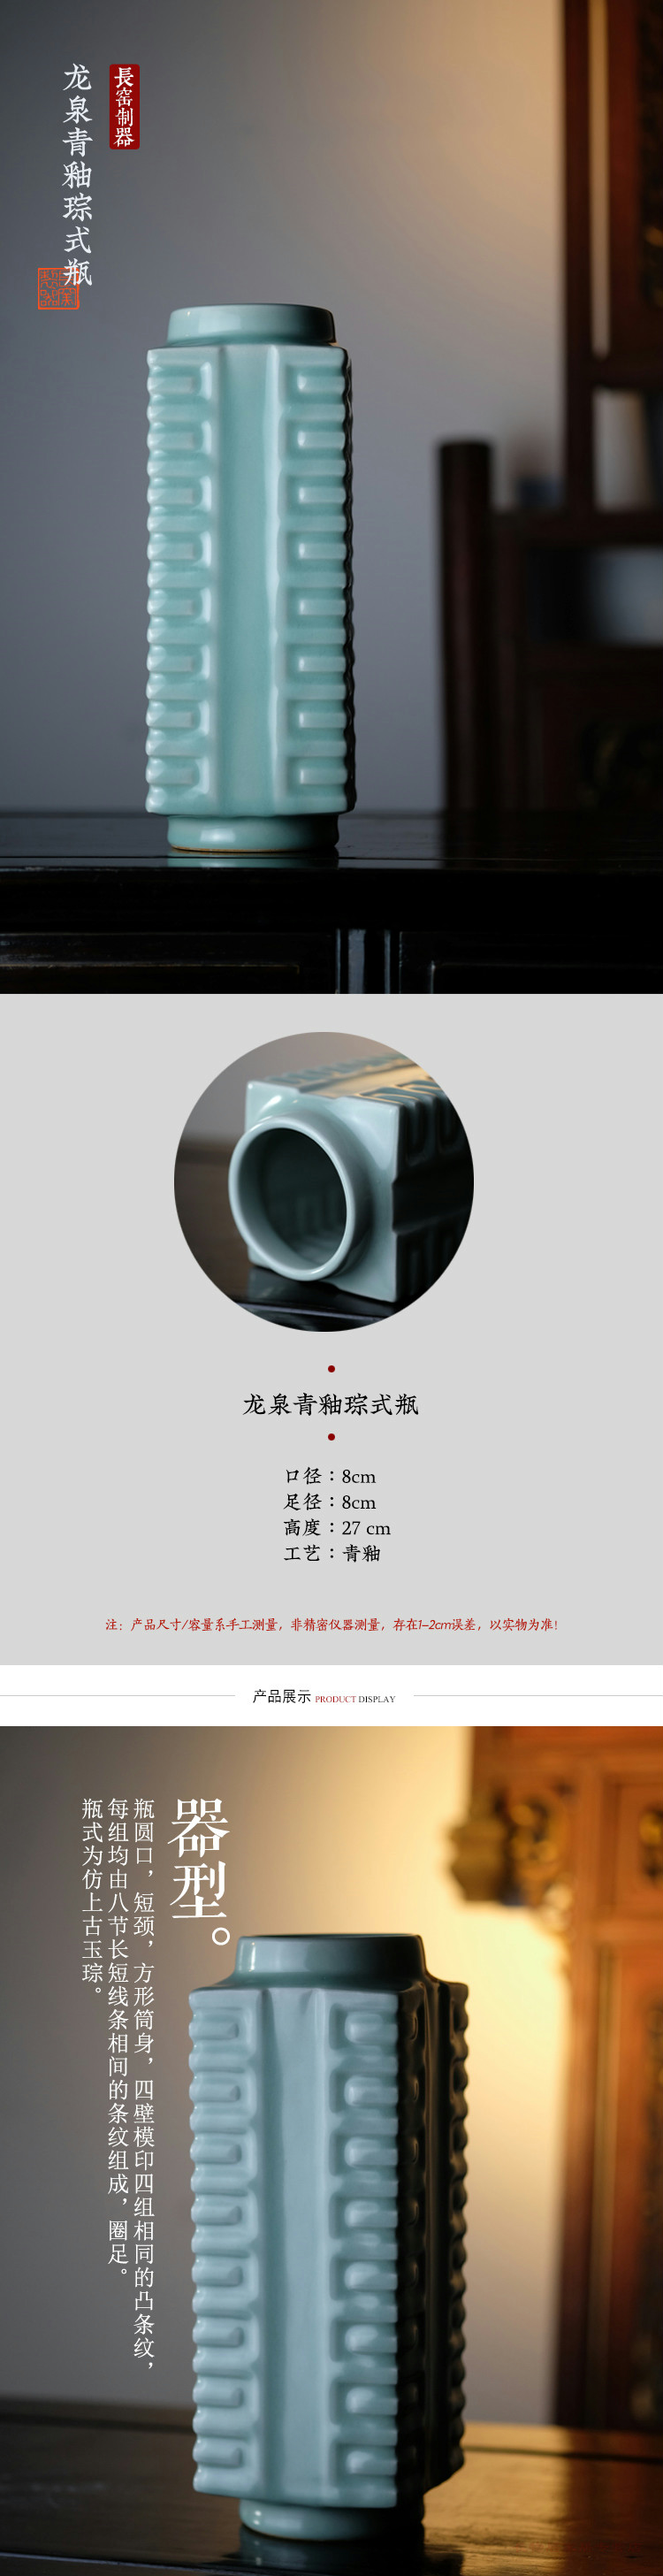 Making those offered home - cooked long up in longquan bottles of jingdezhen blue glaze cong type manual home furnishing articles vase